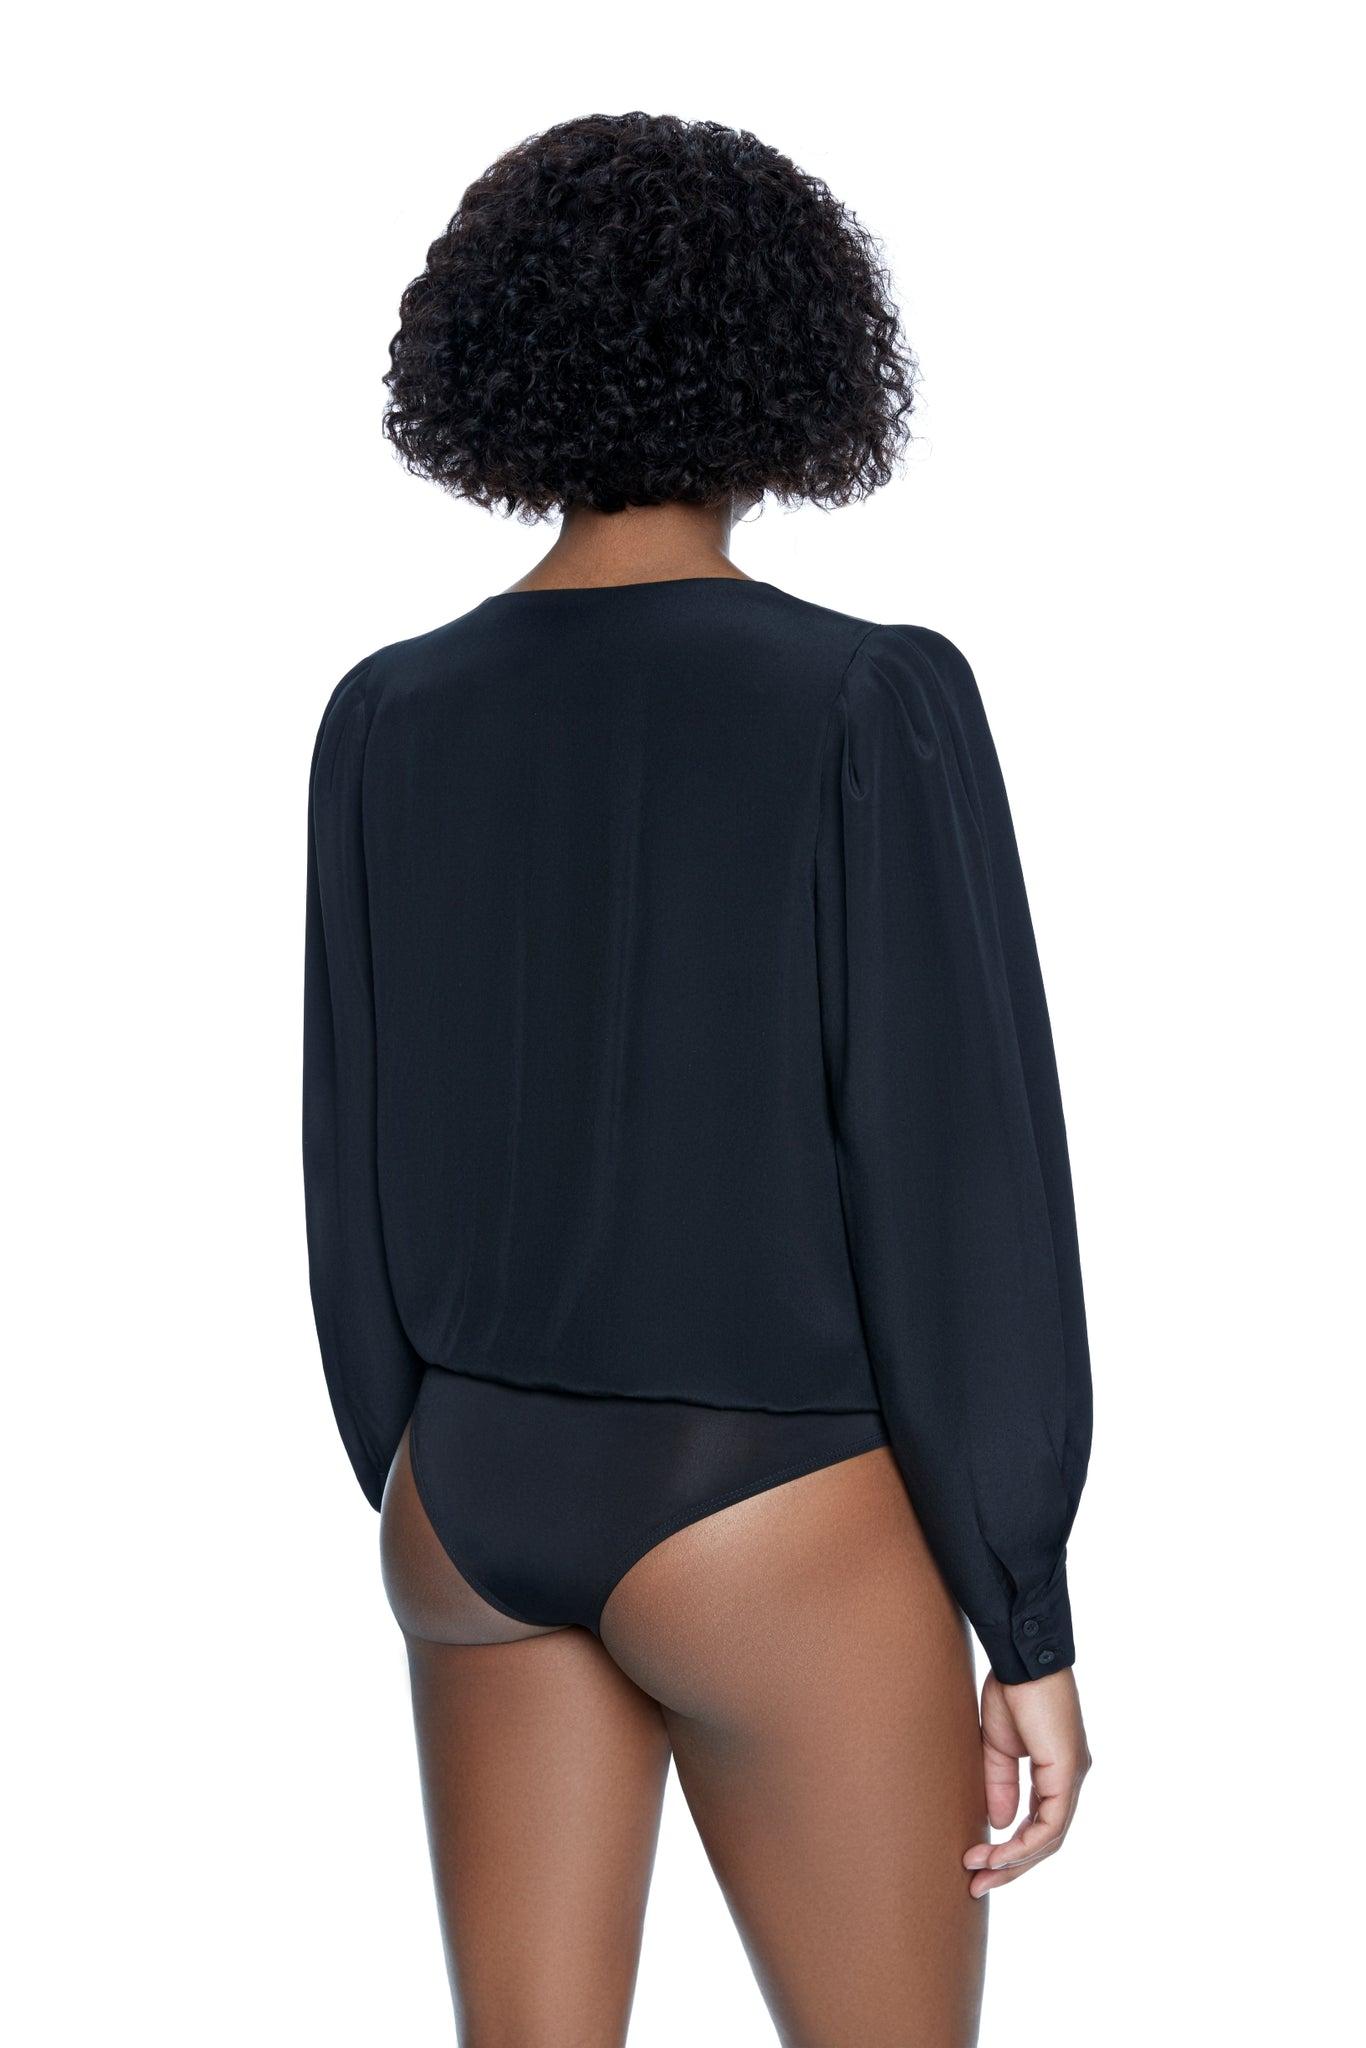 Eva Wrap Blouse Bodysuit - Black